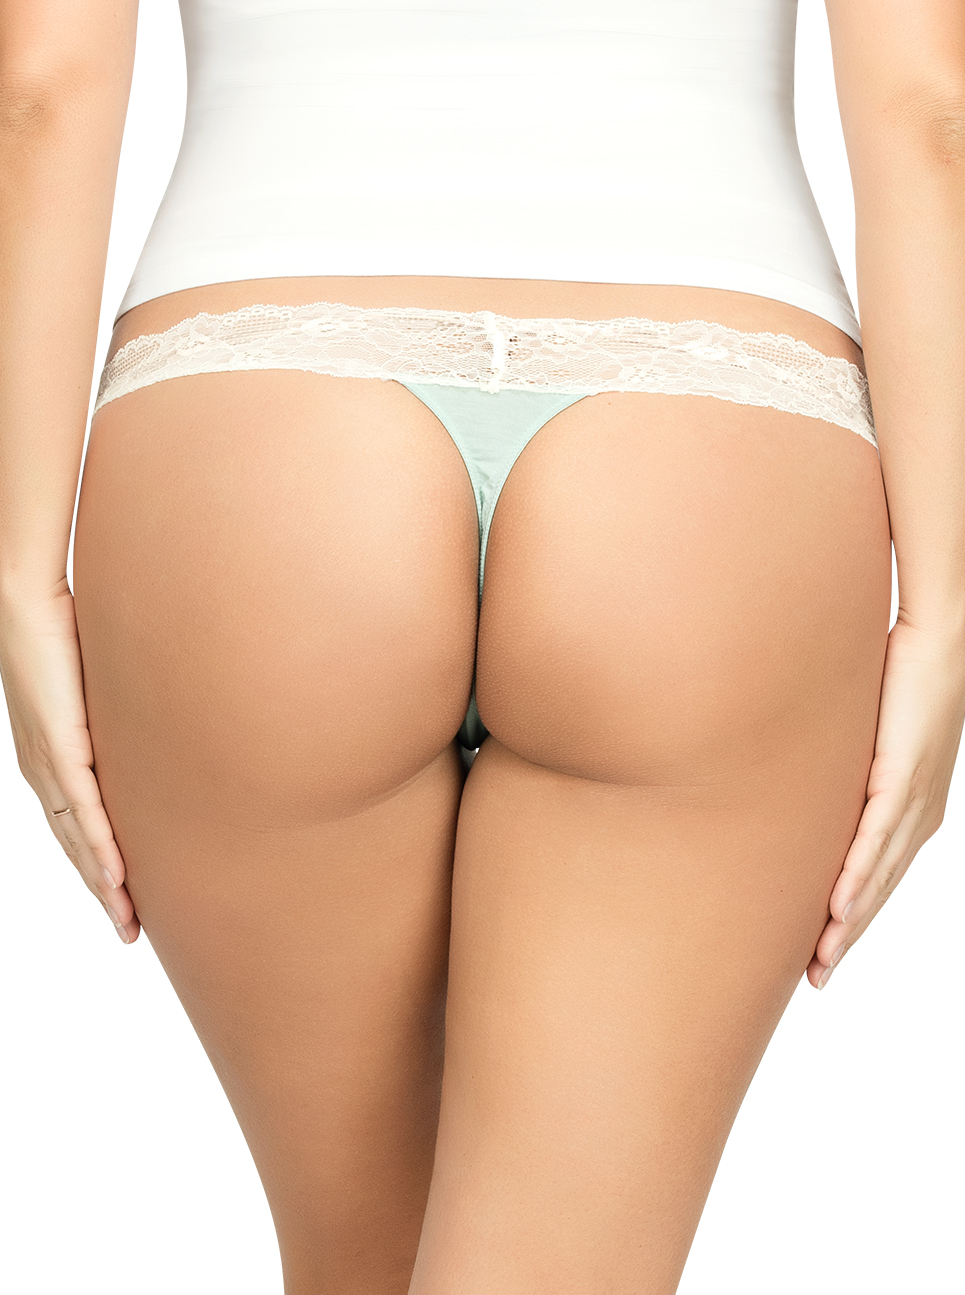 ParfaitPanty SoEssential ThongPP403 Surf Back - Panty So Essential Thong - Surf - PP403